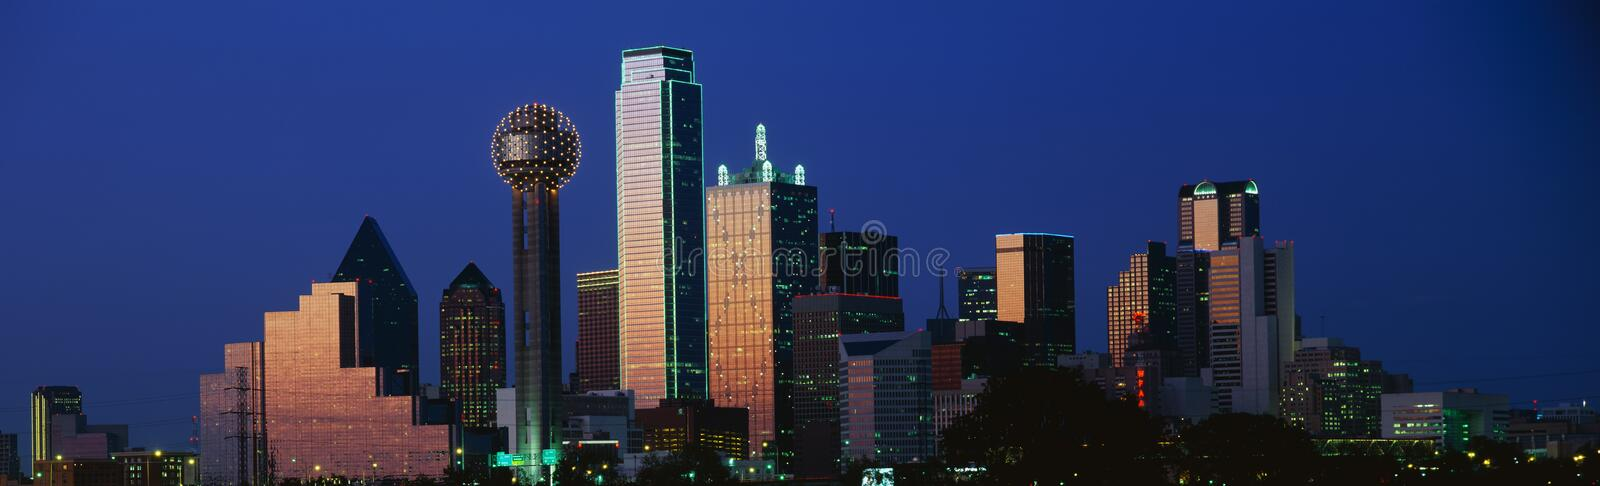 Dallas, TX skyline at dusk stock photography